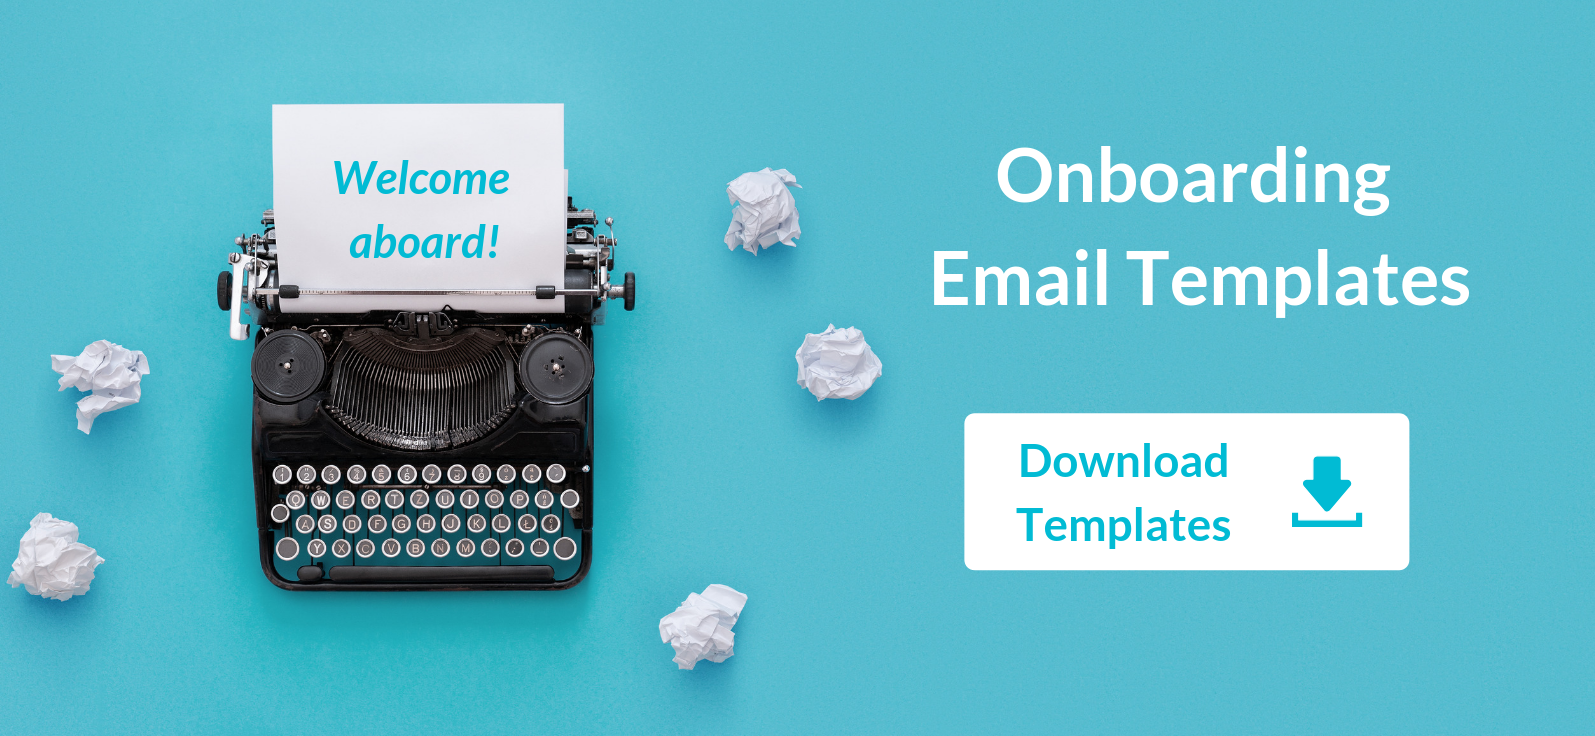 Welcome email template onboarding vocabulary-1